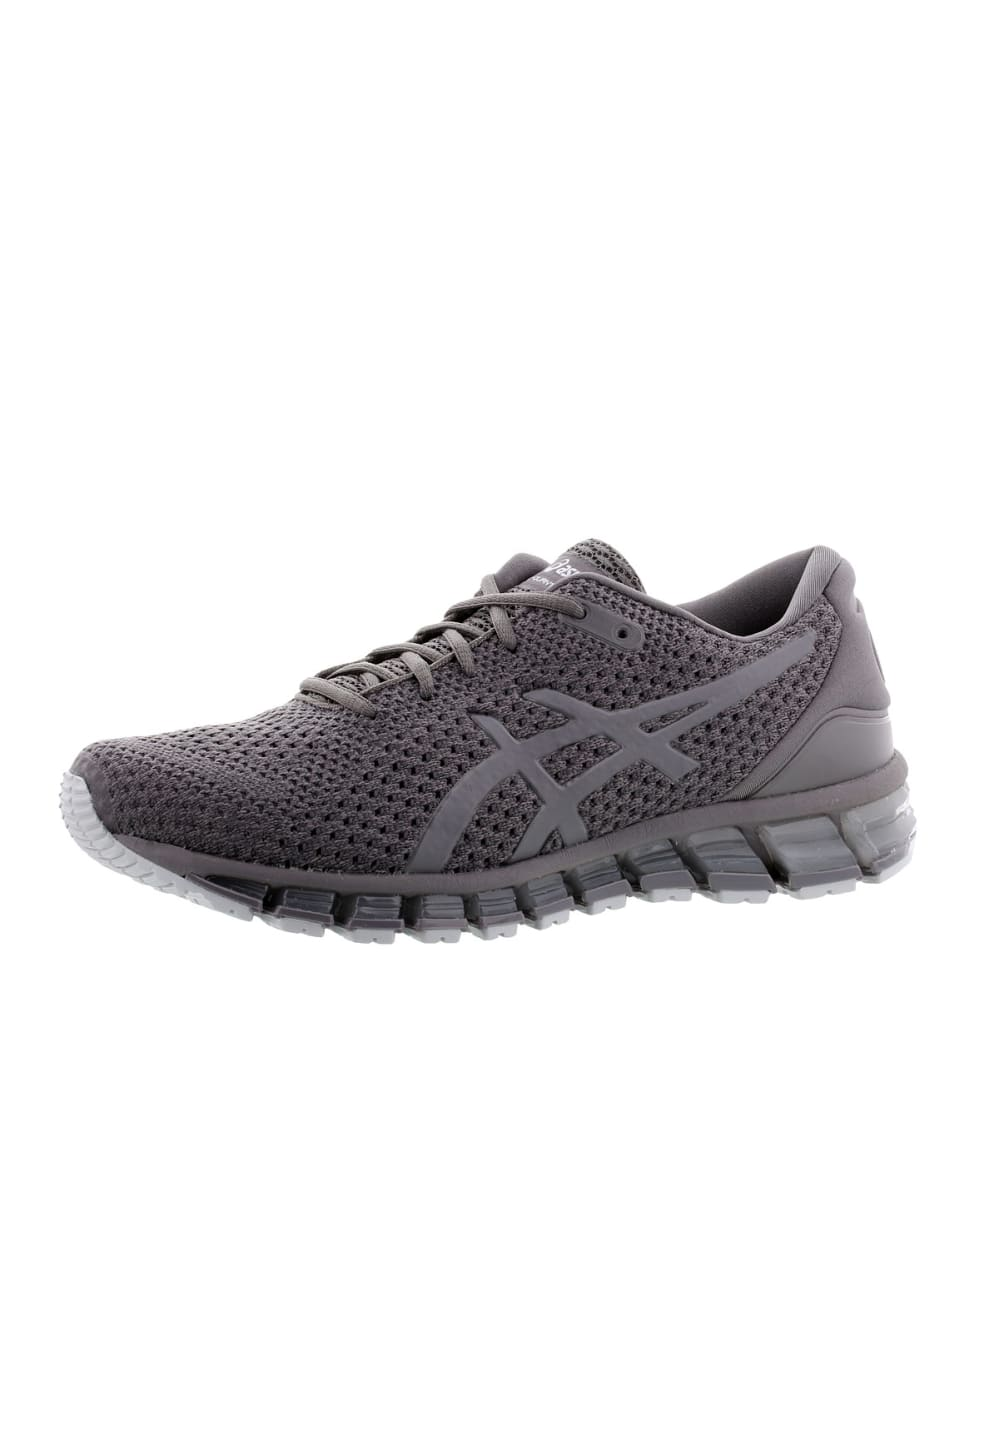 Asics Pour Knit 360 Gris Homme Gel 2 Chaussures Running Quantum 0wOvyNm8n